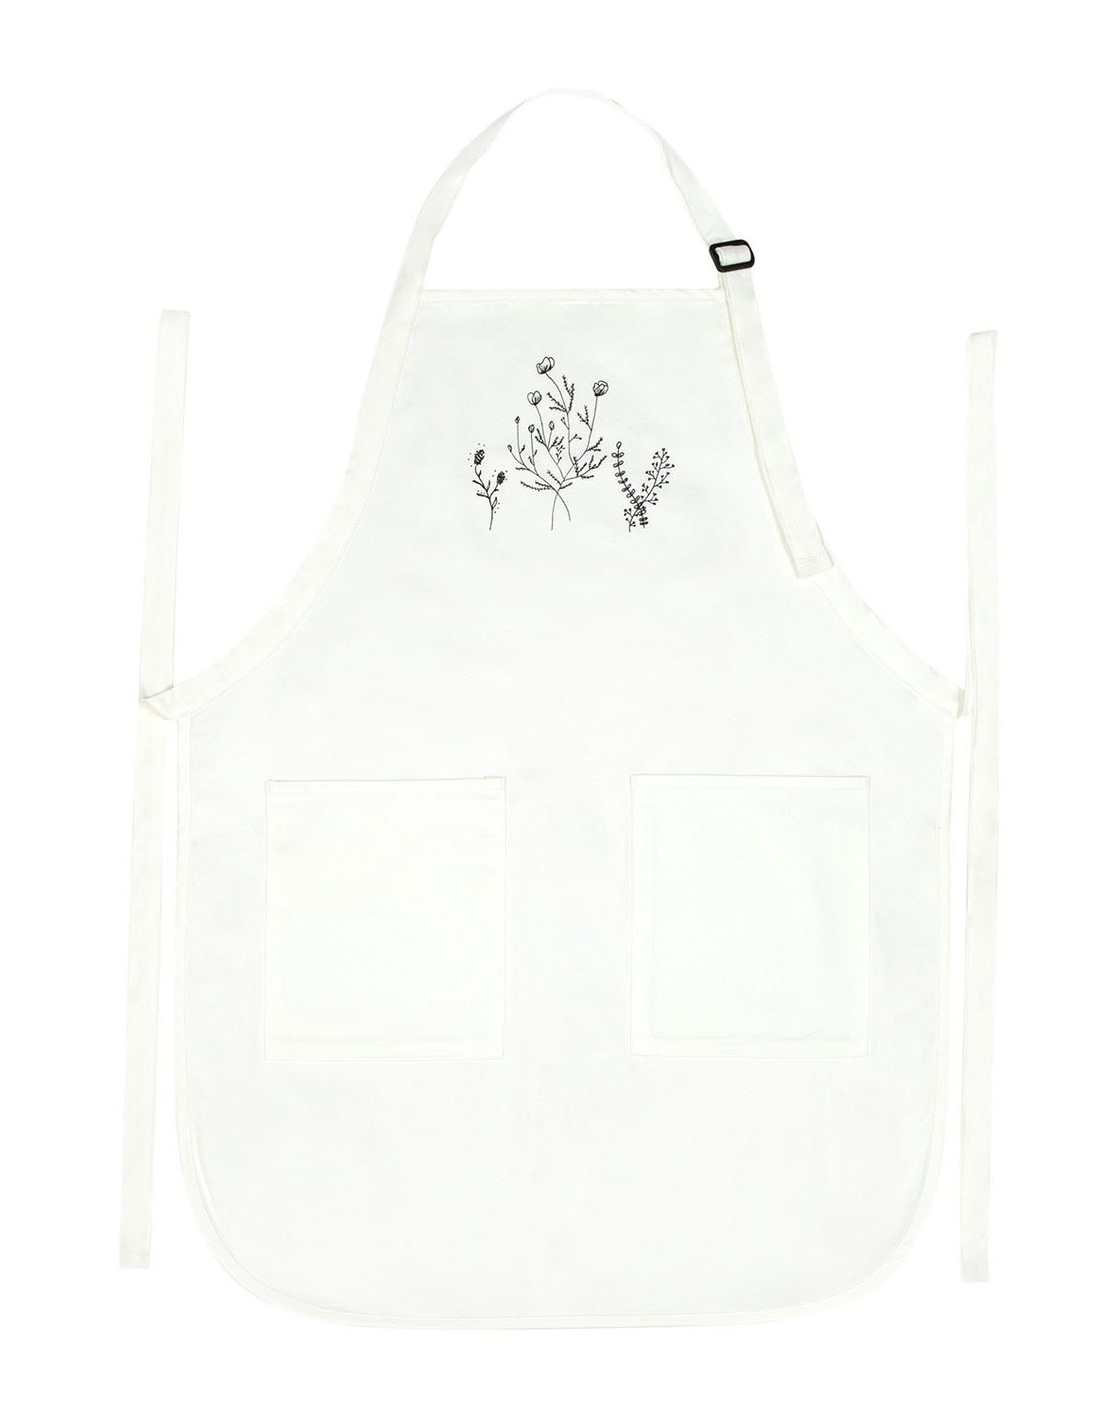 'flower' apron - What you'll get:1 adult apron with two front pockets100% cotton twill with soil-release finishAdjustable neck strapMeasures 22